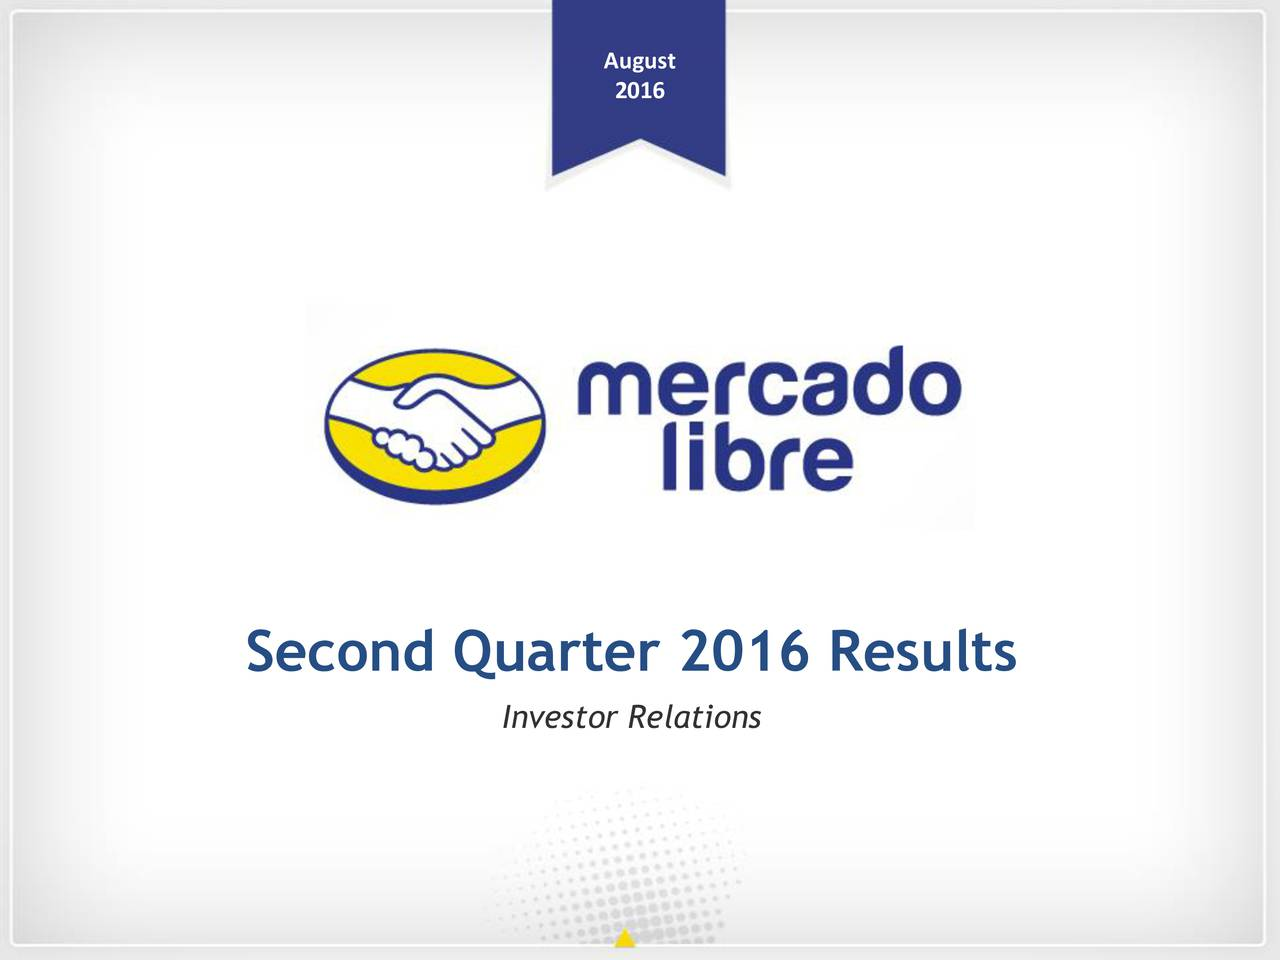 2016 Second Quarter 2016 Results Investor Relations